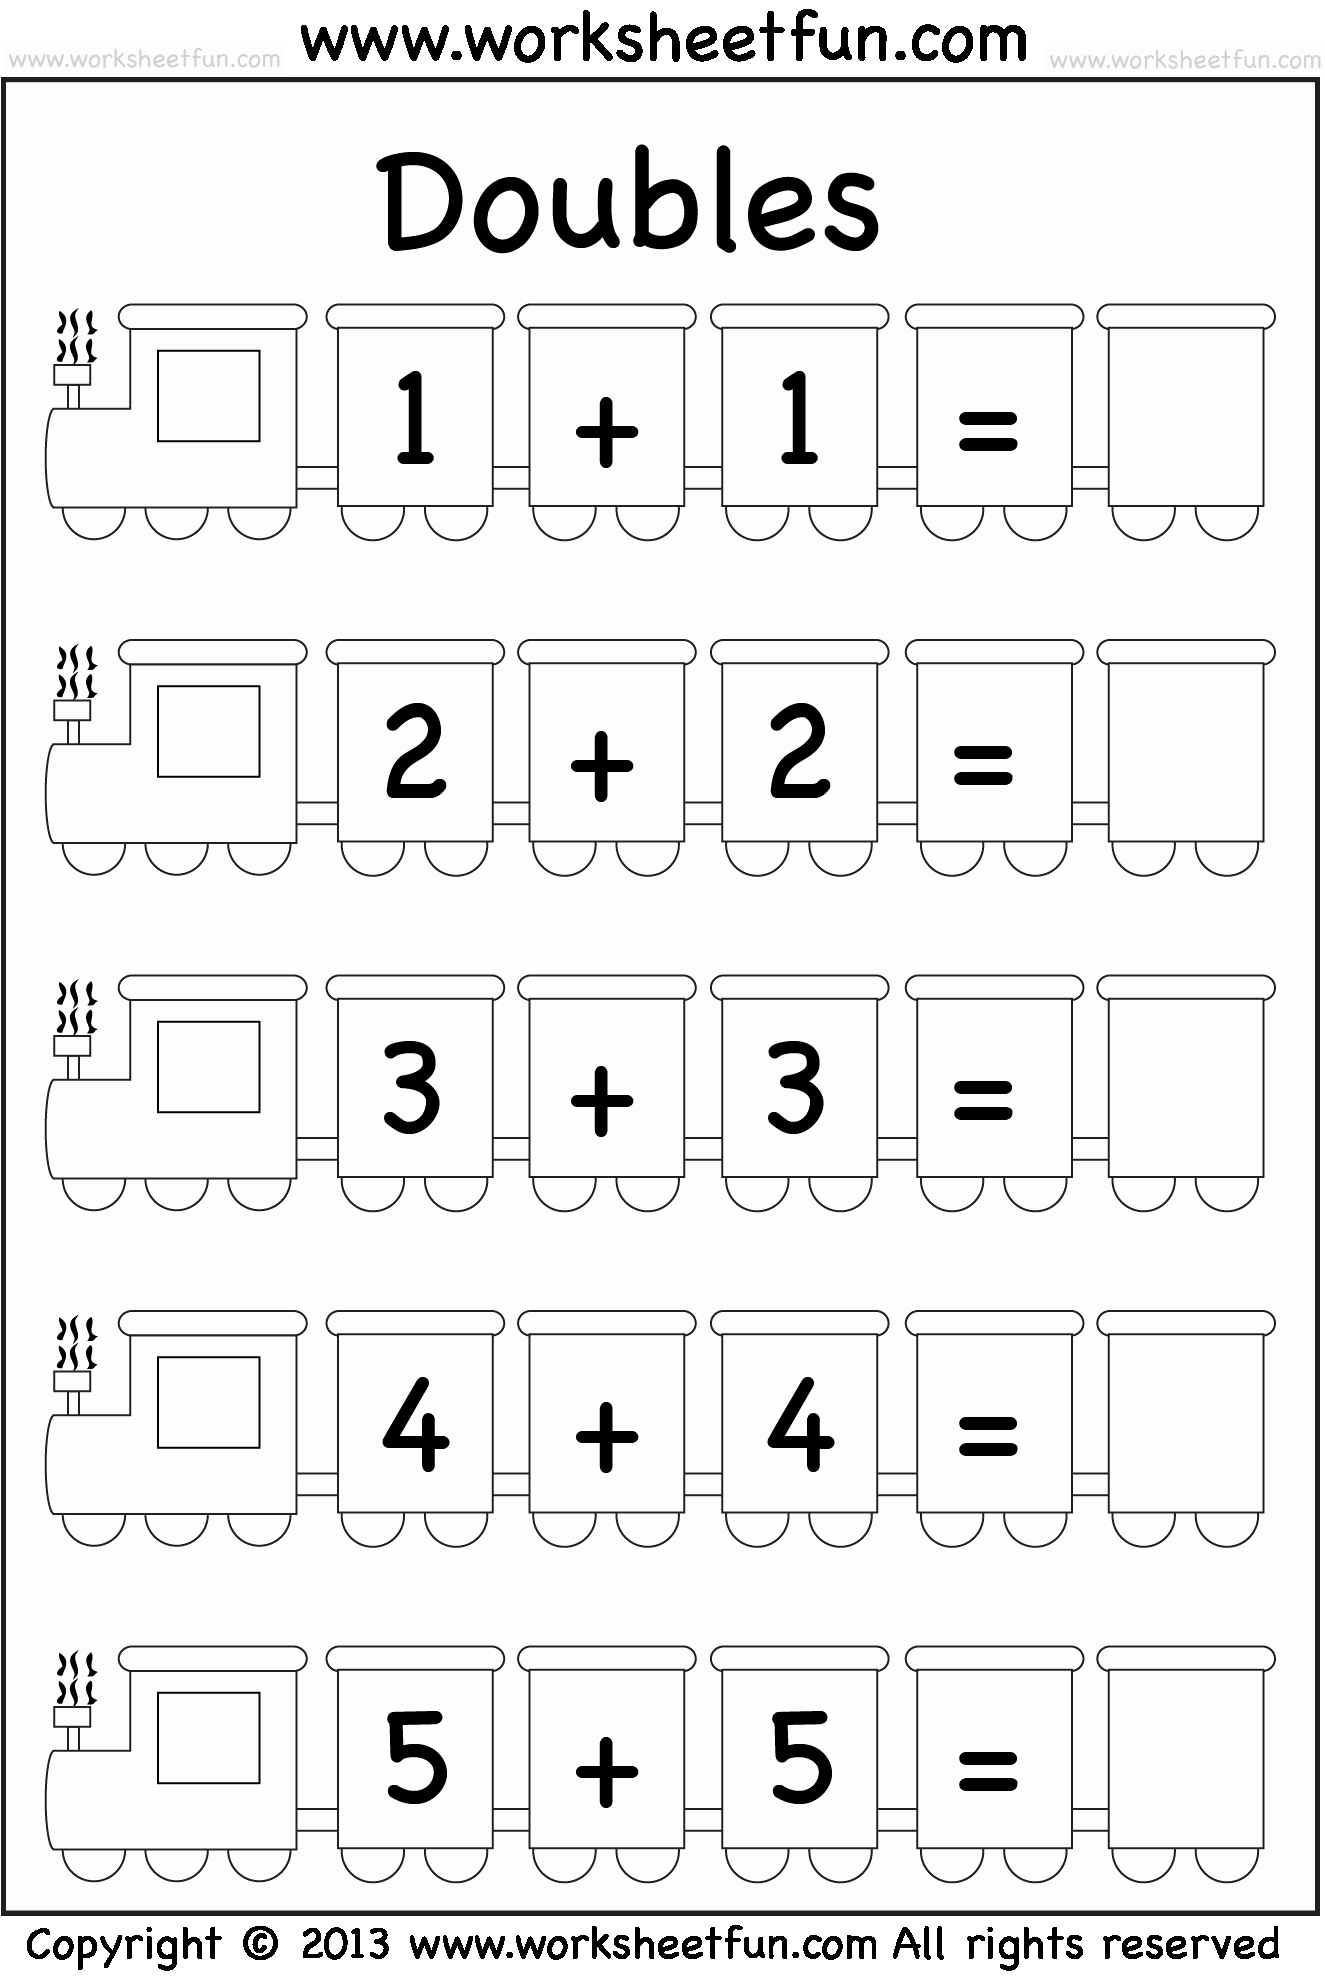 Double Facts Worksheets Unique Addition Doubles – 1 Worksheet Free Printable Worksheets